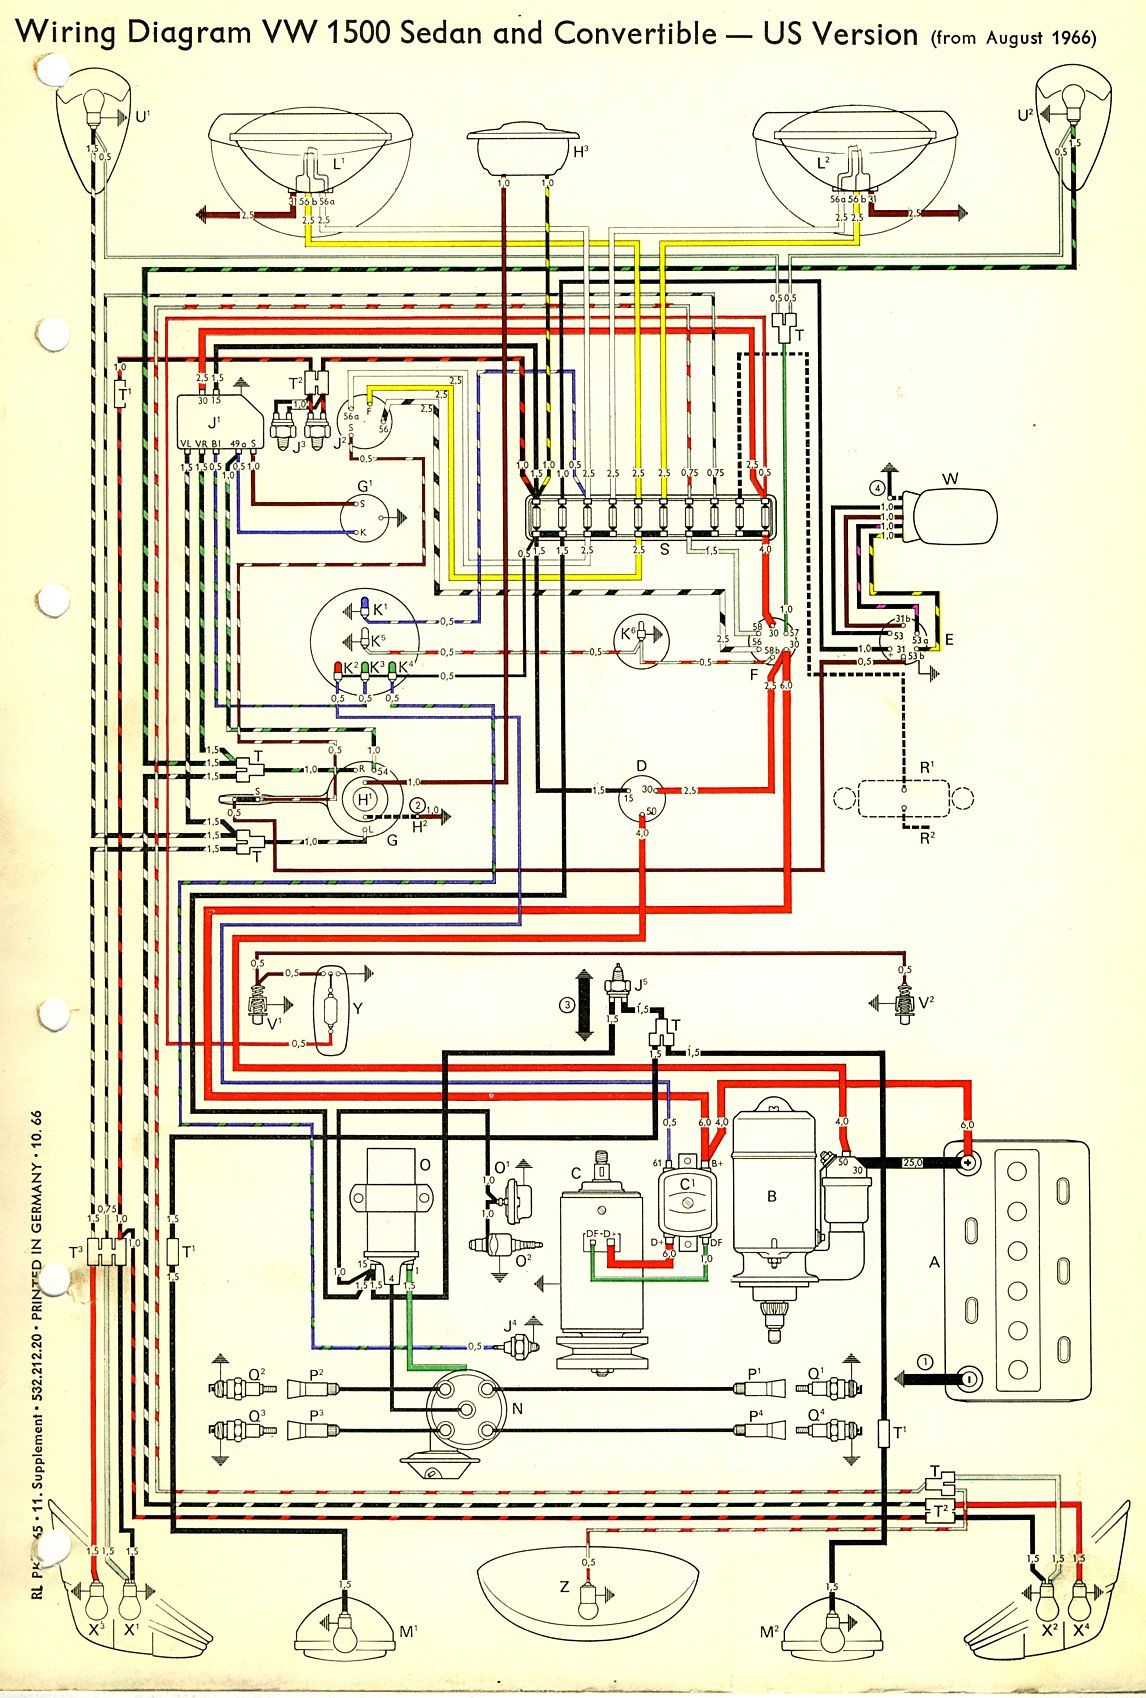 1adf990c0efb617c789fdd21338448b0 67 vw bus wiring harness 71 vw wiring harness \u2022 wiring diagrams 1970 vw beetle wiring diagram at n-0.co